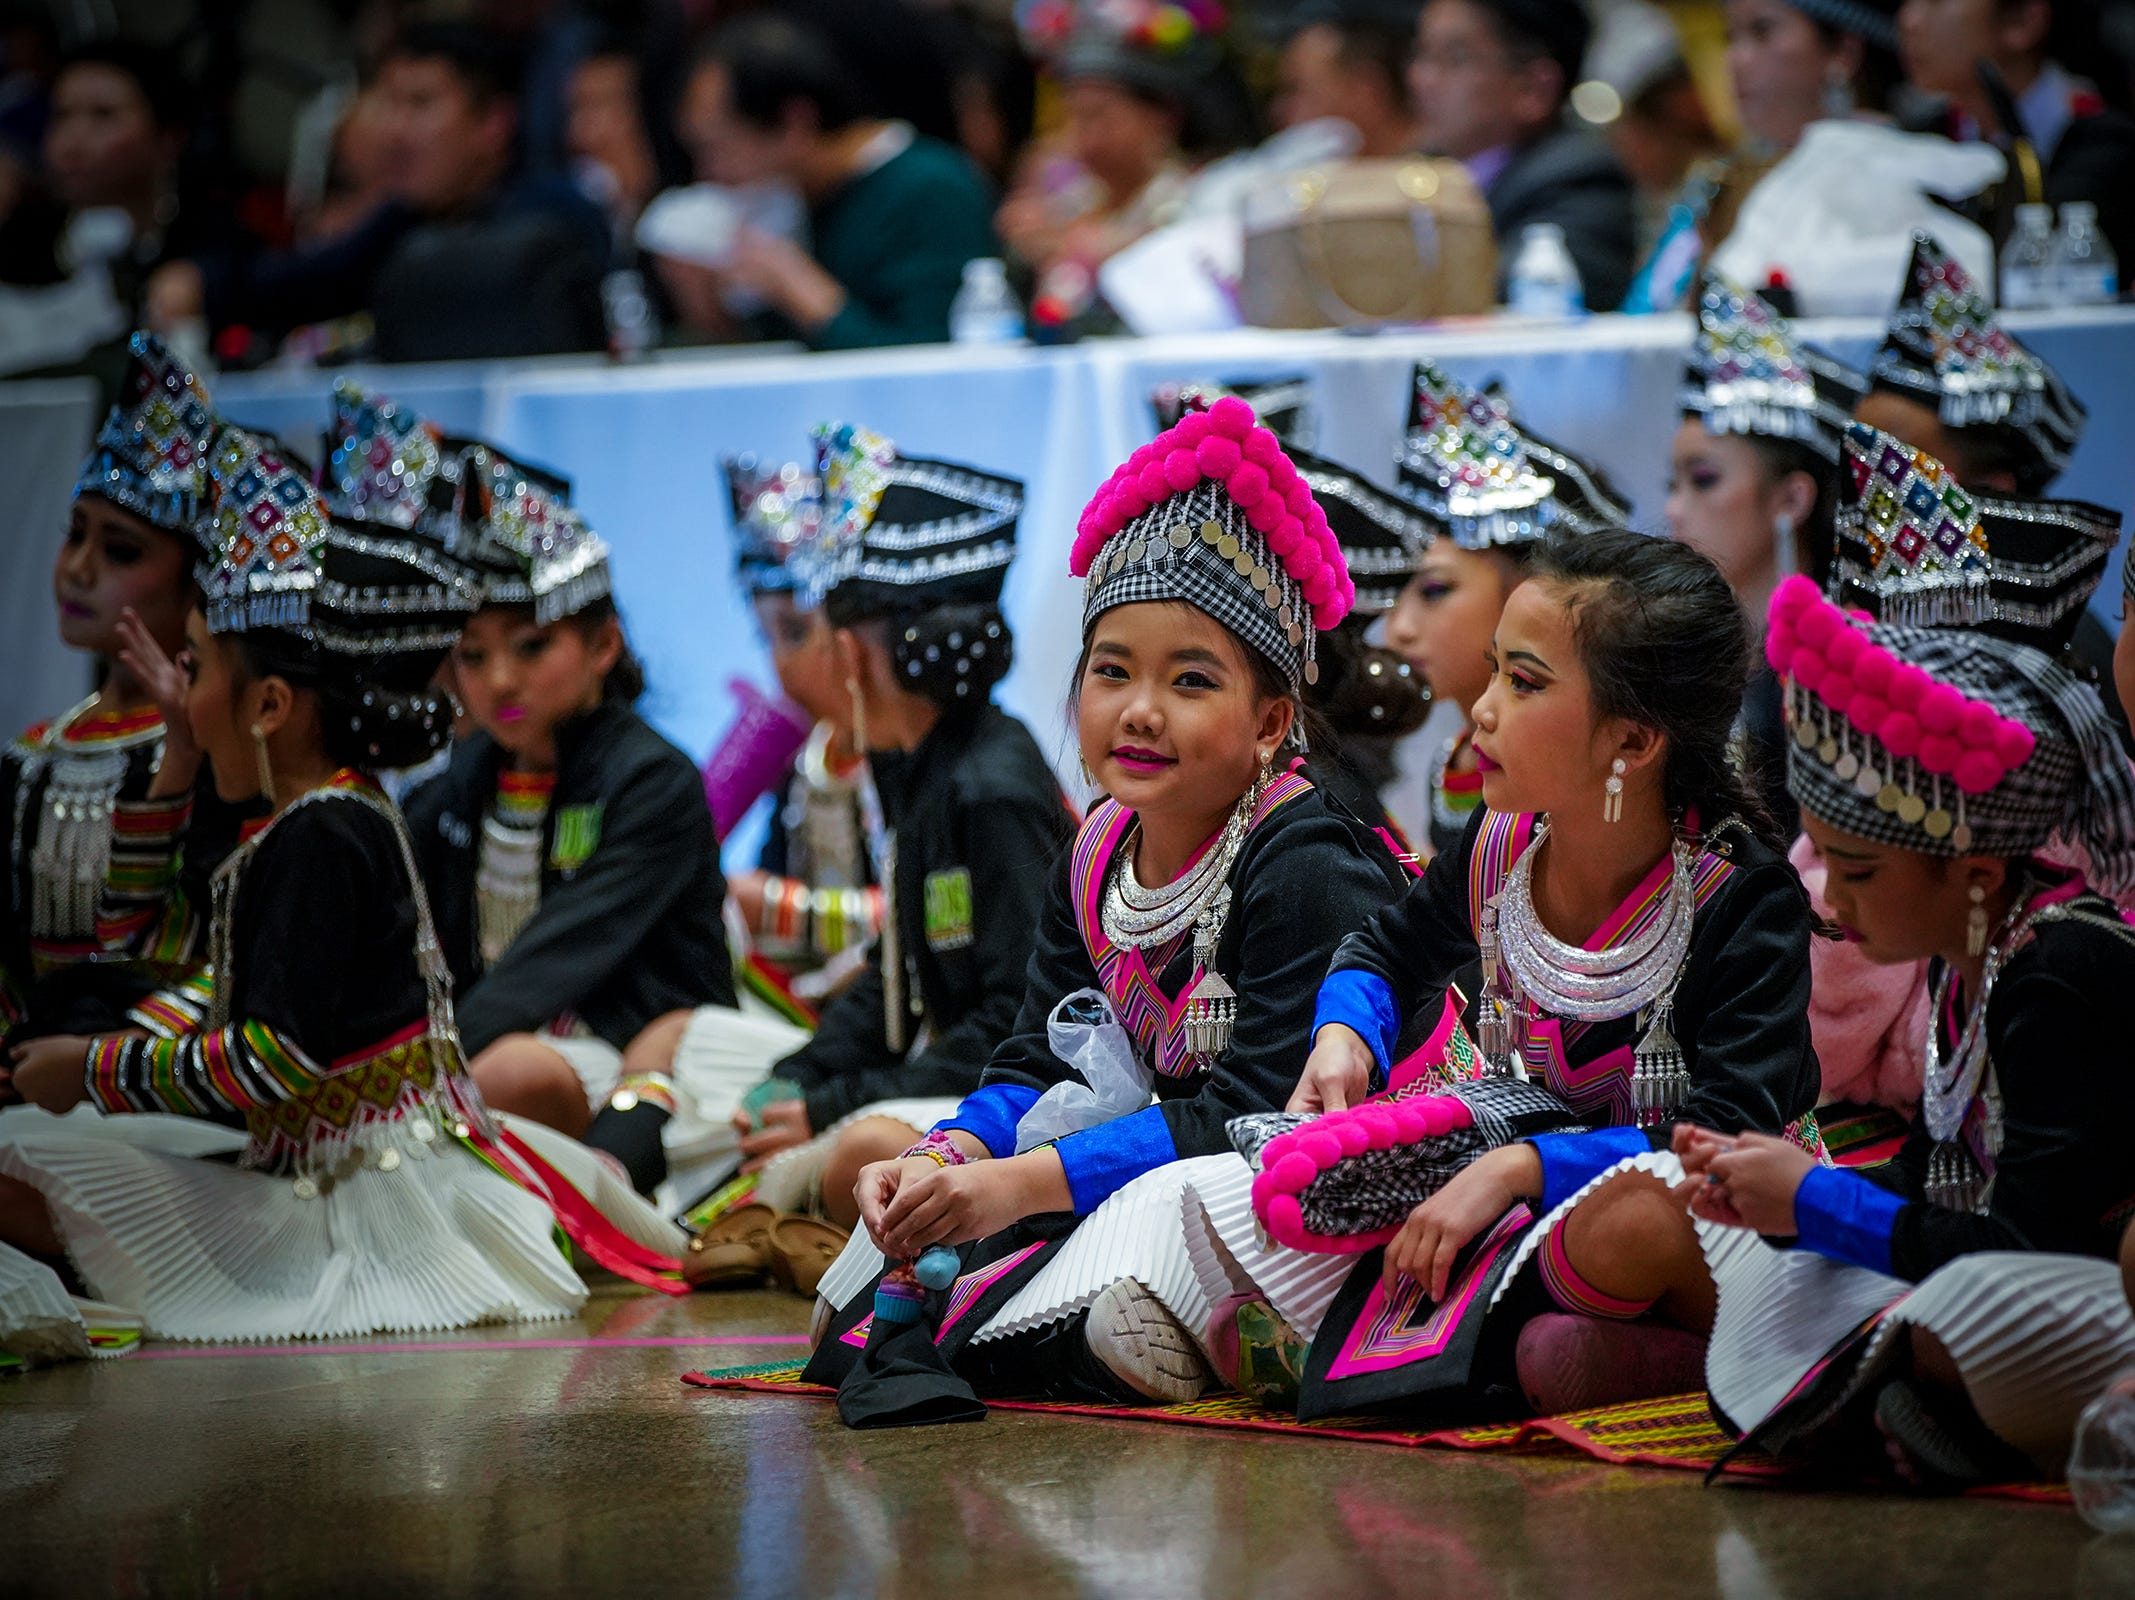 Thousands of Hmong across Wisconsin traveled over the weekend to celebrate one of the largest Hmong festivals in the country, the 40th Annual Minnesota Hmong New Year event, held at the RiverCentre in St. Paul, MN. The three-day celebration ran Friday through Sunday, Nov. 23rd to 25th, with activities that included, among other things, traditional ball tossing, folk songs, cultural dances and a pageant competition. Many Hmong dressed in colorful attire and showcased hand-made jewelries to celebrate achievements from throughout the year. T'xer Zhon Kha/USA TODAY NETWORK-Wisconsin